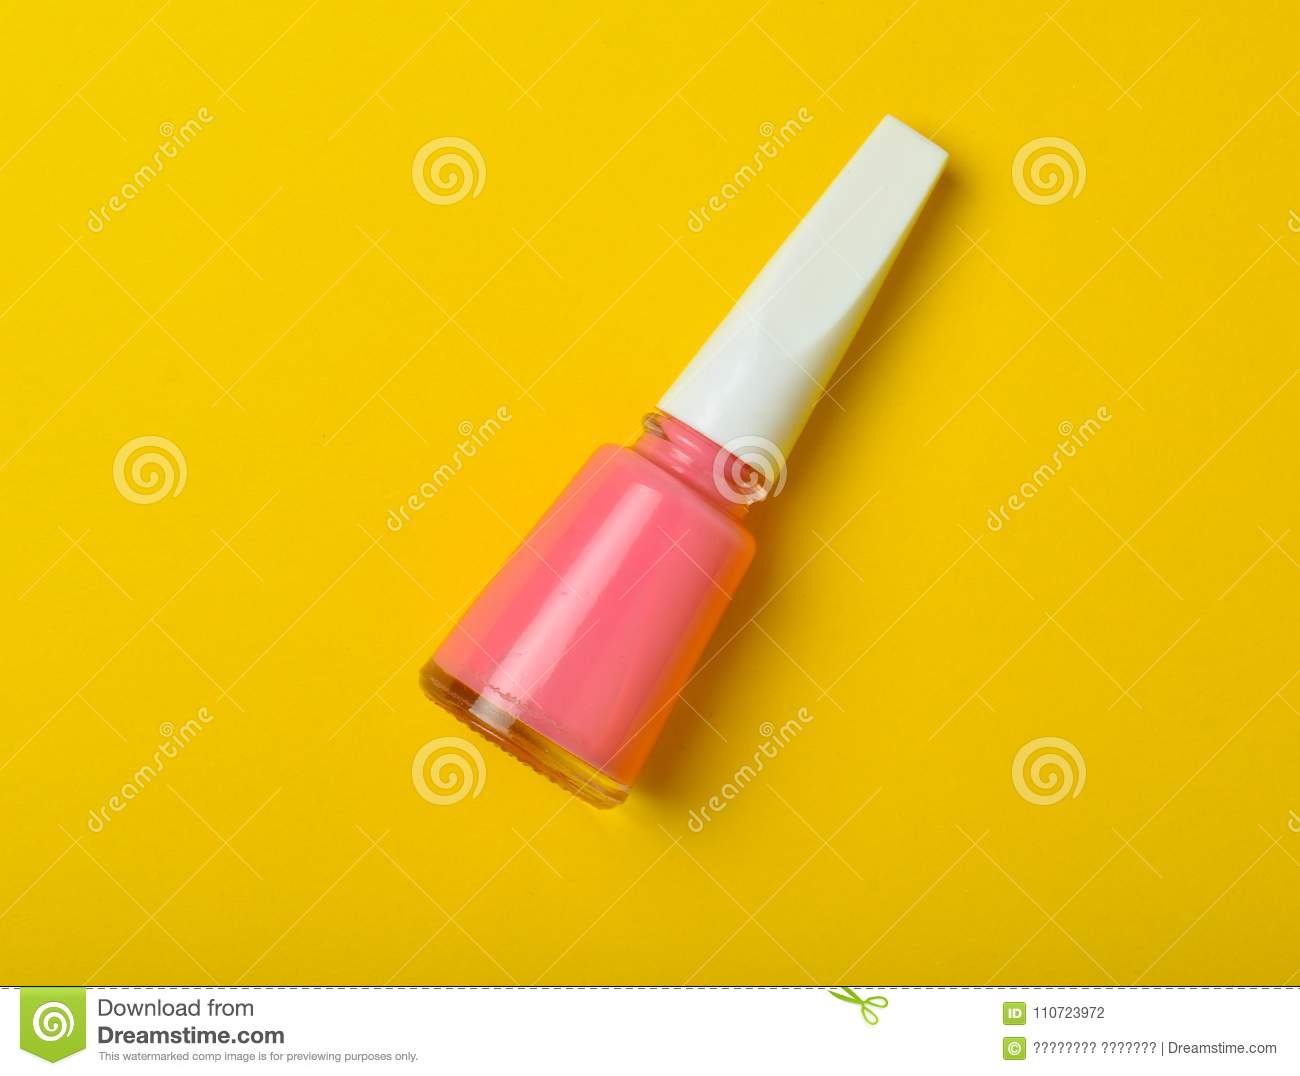 A Bottle Of Pink Nail Polish On A Bright Yellow Background Top View